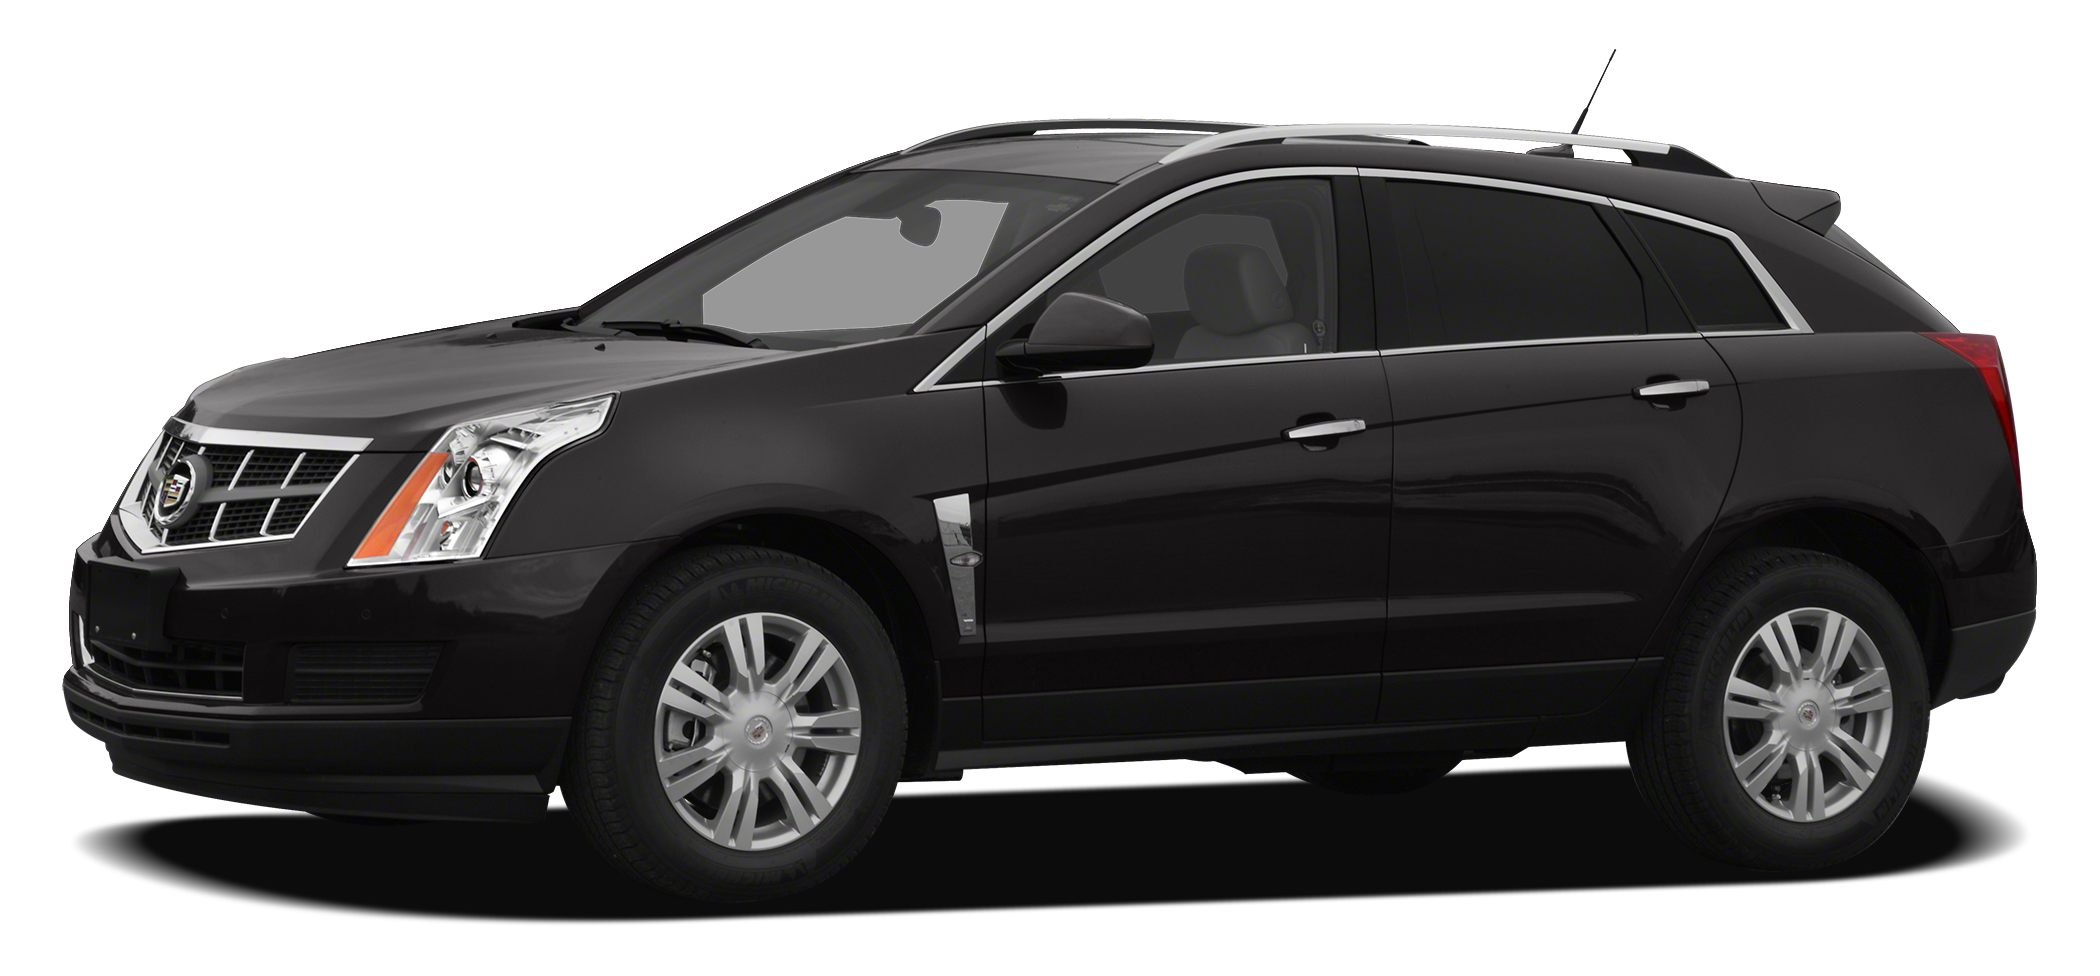 2012 Cadillac SRX Performance Take a look at this AWD SRX with Performance Pkg thats been all ser